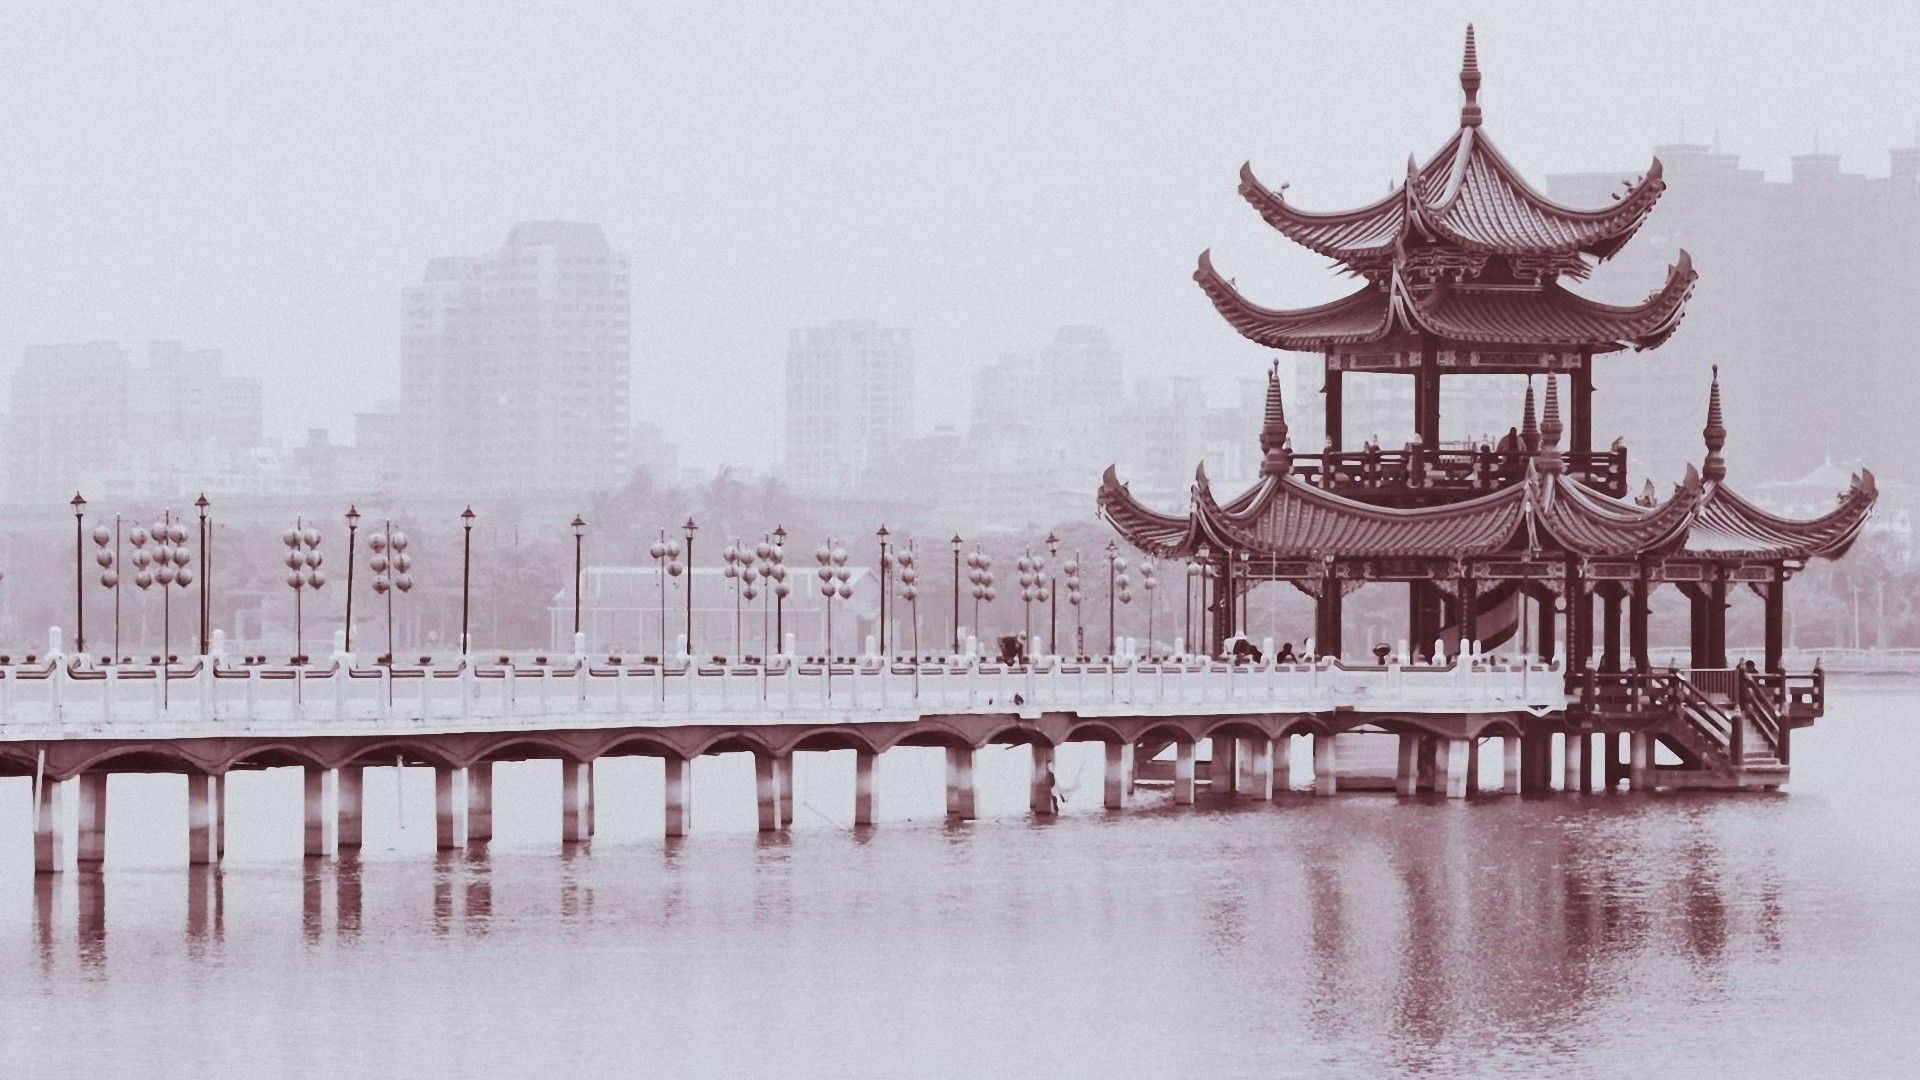 1920x1080 Chinese monochrome 1920x1080 wallpaper Design bridges buildings ...